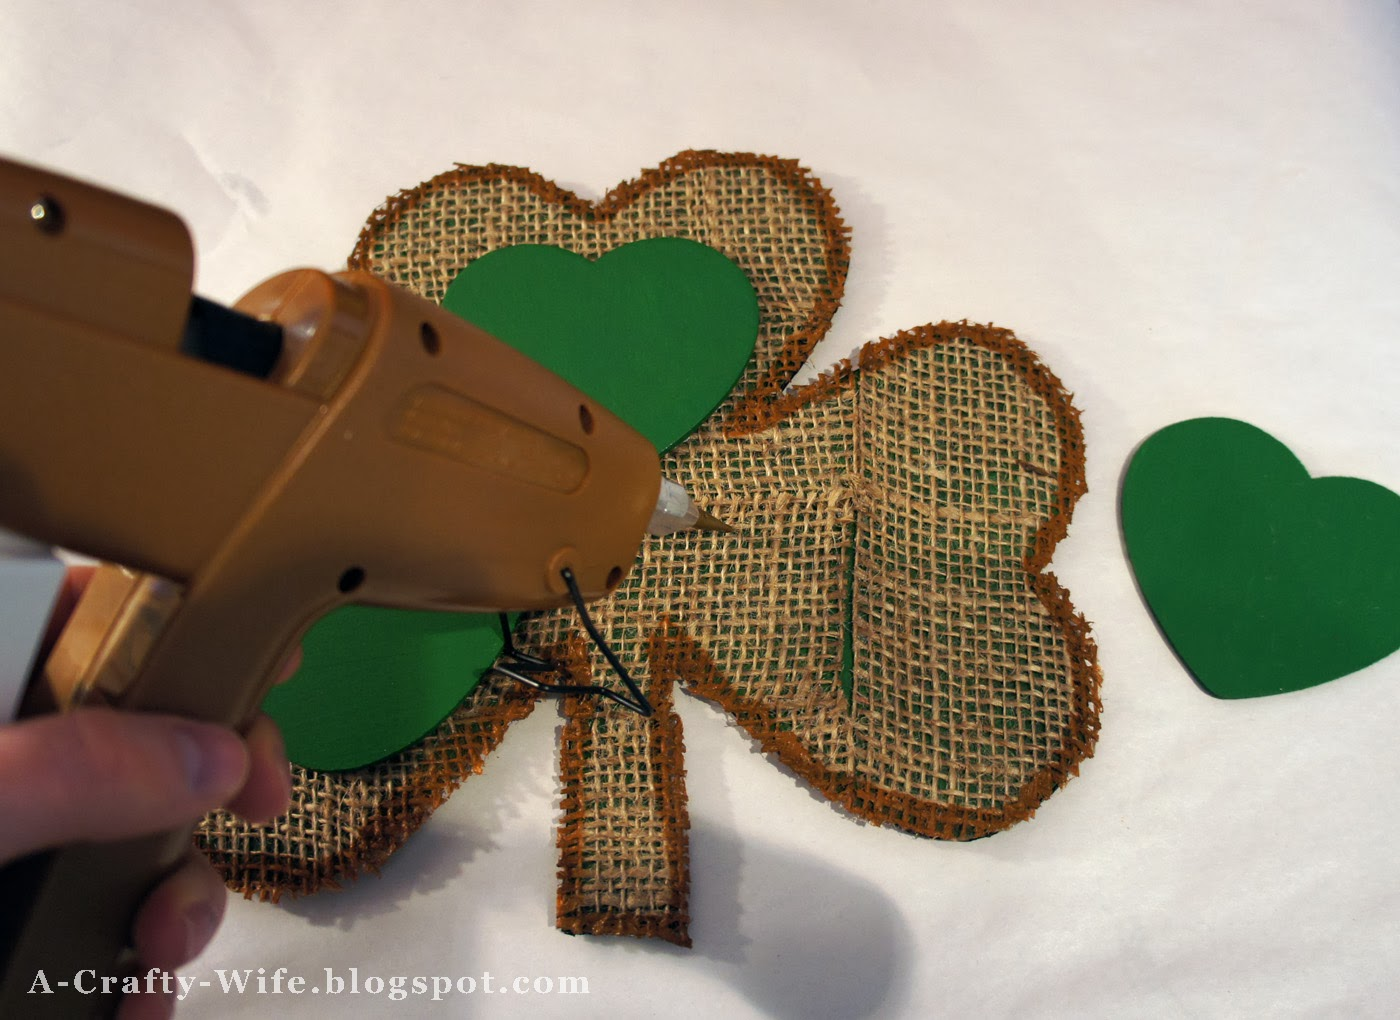 Hot glue painted wooden hearts onto cardboard shamrock | A Crafty Wife